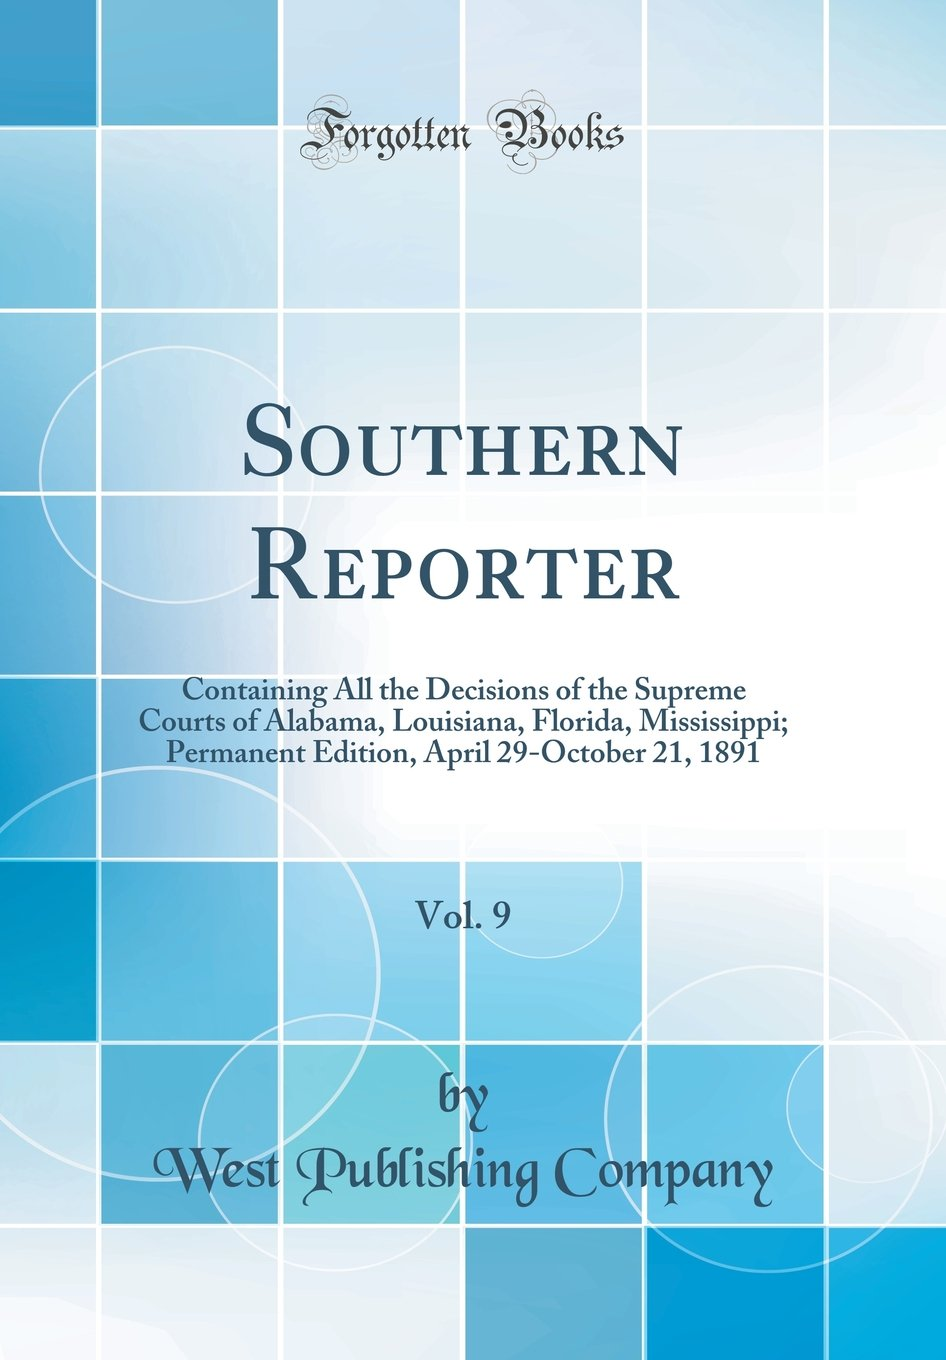 Download Southern Reporter, Vol. 9: Containing All the Decisions of the Supreme Courts of Alabama, Louisiana, Florida, Mississippi; Permanent Edition, April 29-October 21, 1891 (Classic Reprint) ebook